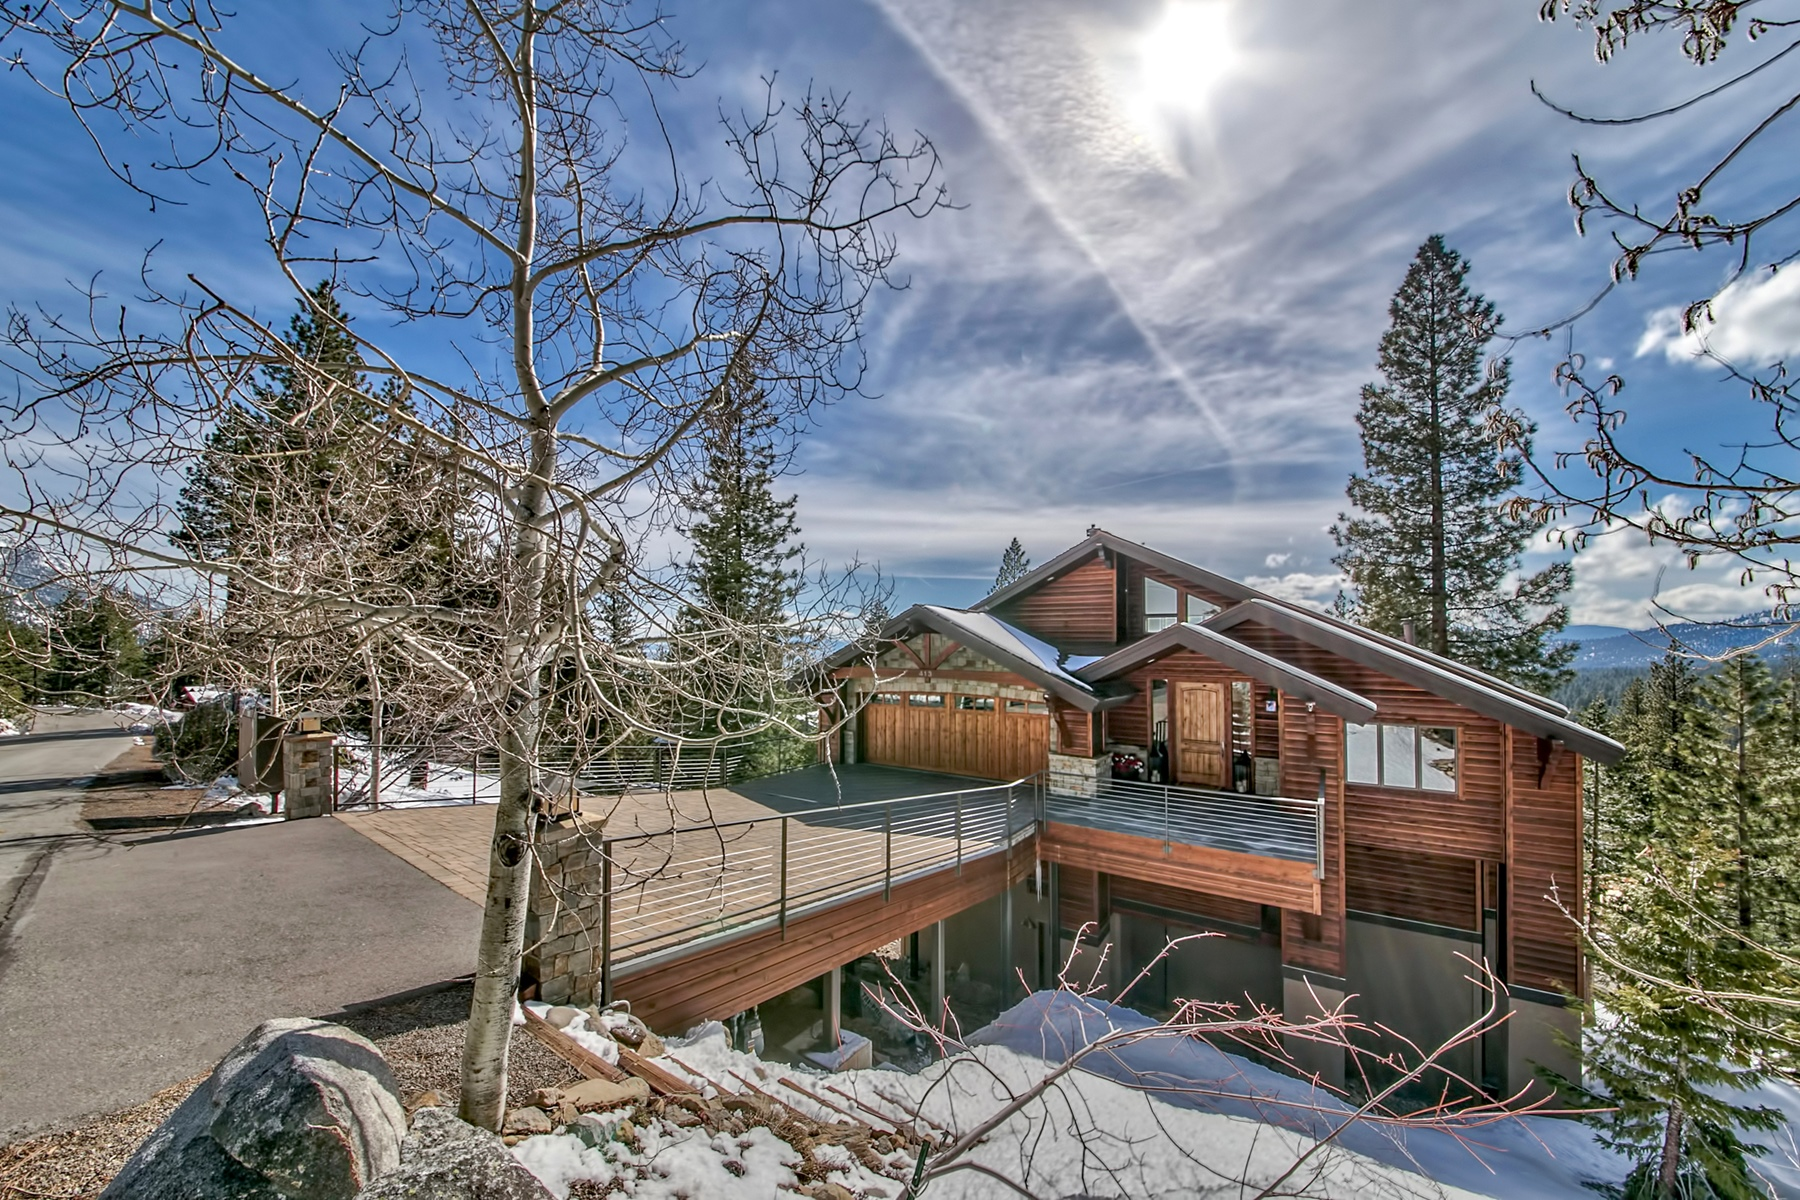 Single Family Home for Sale at 413 Fairview Boulevard, Incline Village, Nevada Incline Village, Nevada, 89451 Lake Tahoe, United States